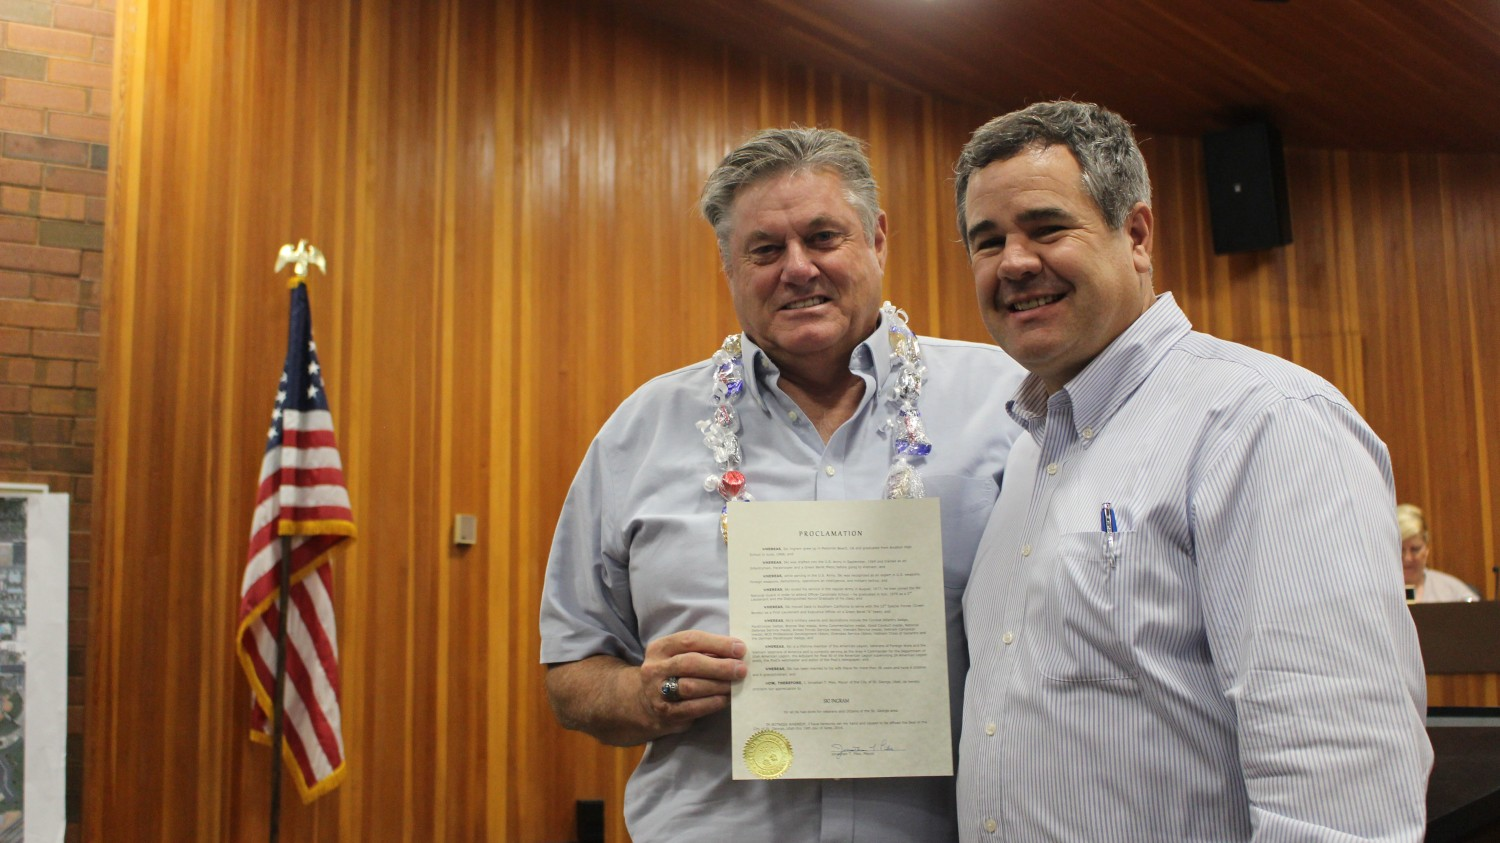 L-R: Ski Ingram and St. George Mayor Jon Pike. Ingram is holding the proclamation honoring his service to the community that was read by the mayor, St. George, Utah, June 15, 2016 | Photo by Mori Kessler, St. George